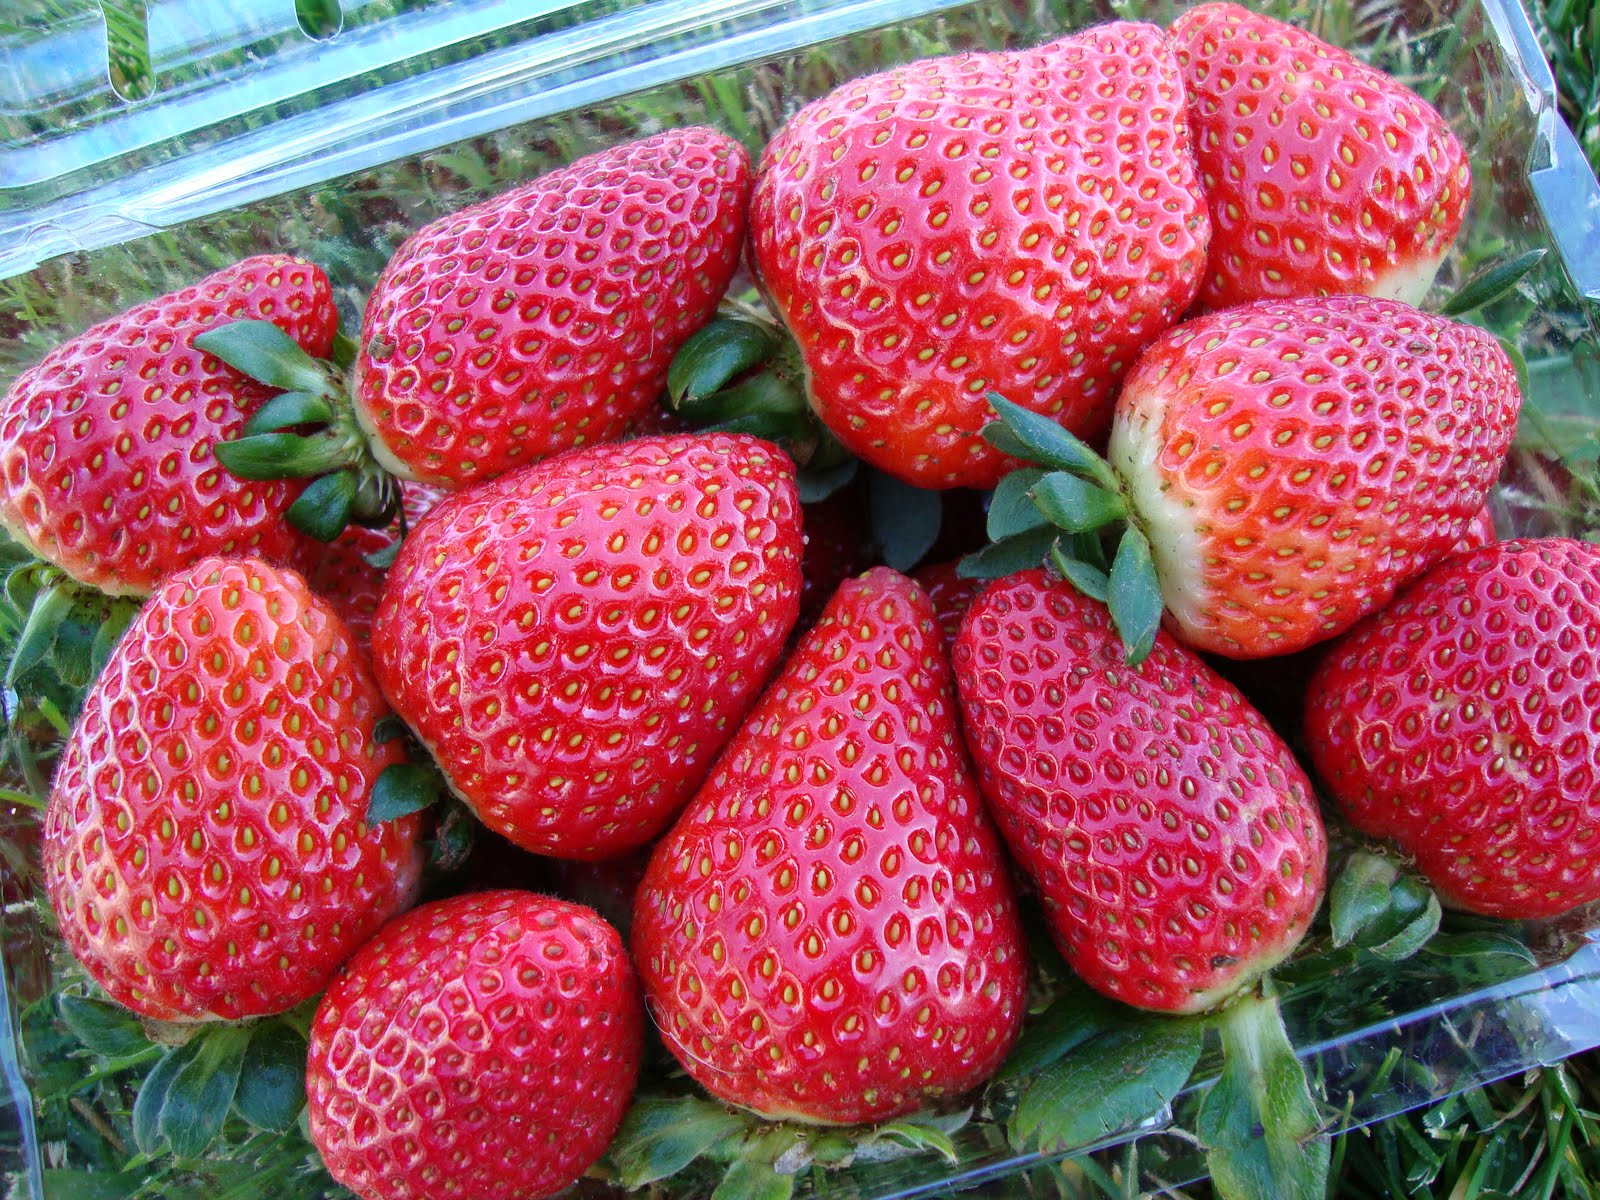 produce clerk the produce clerks handbook by rick chong good quality fresh strawberries in a clamshell